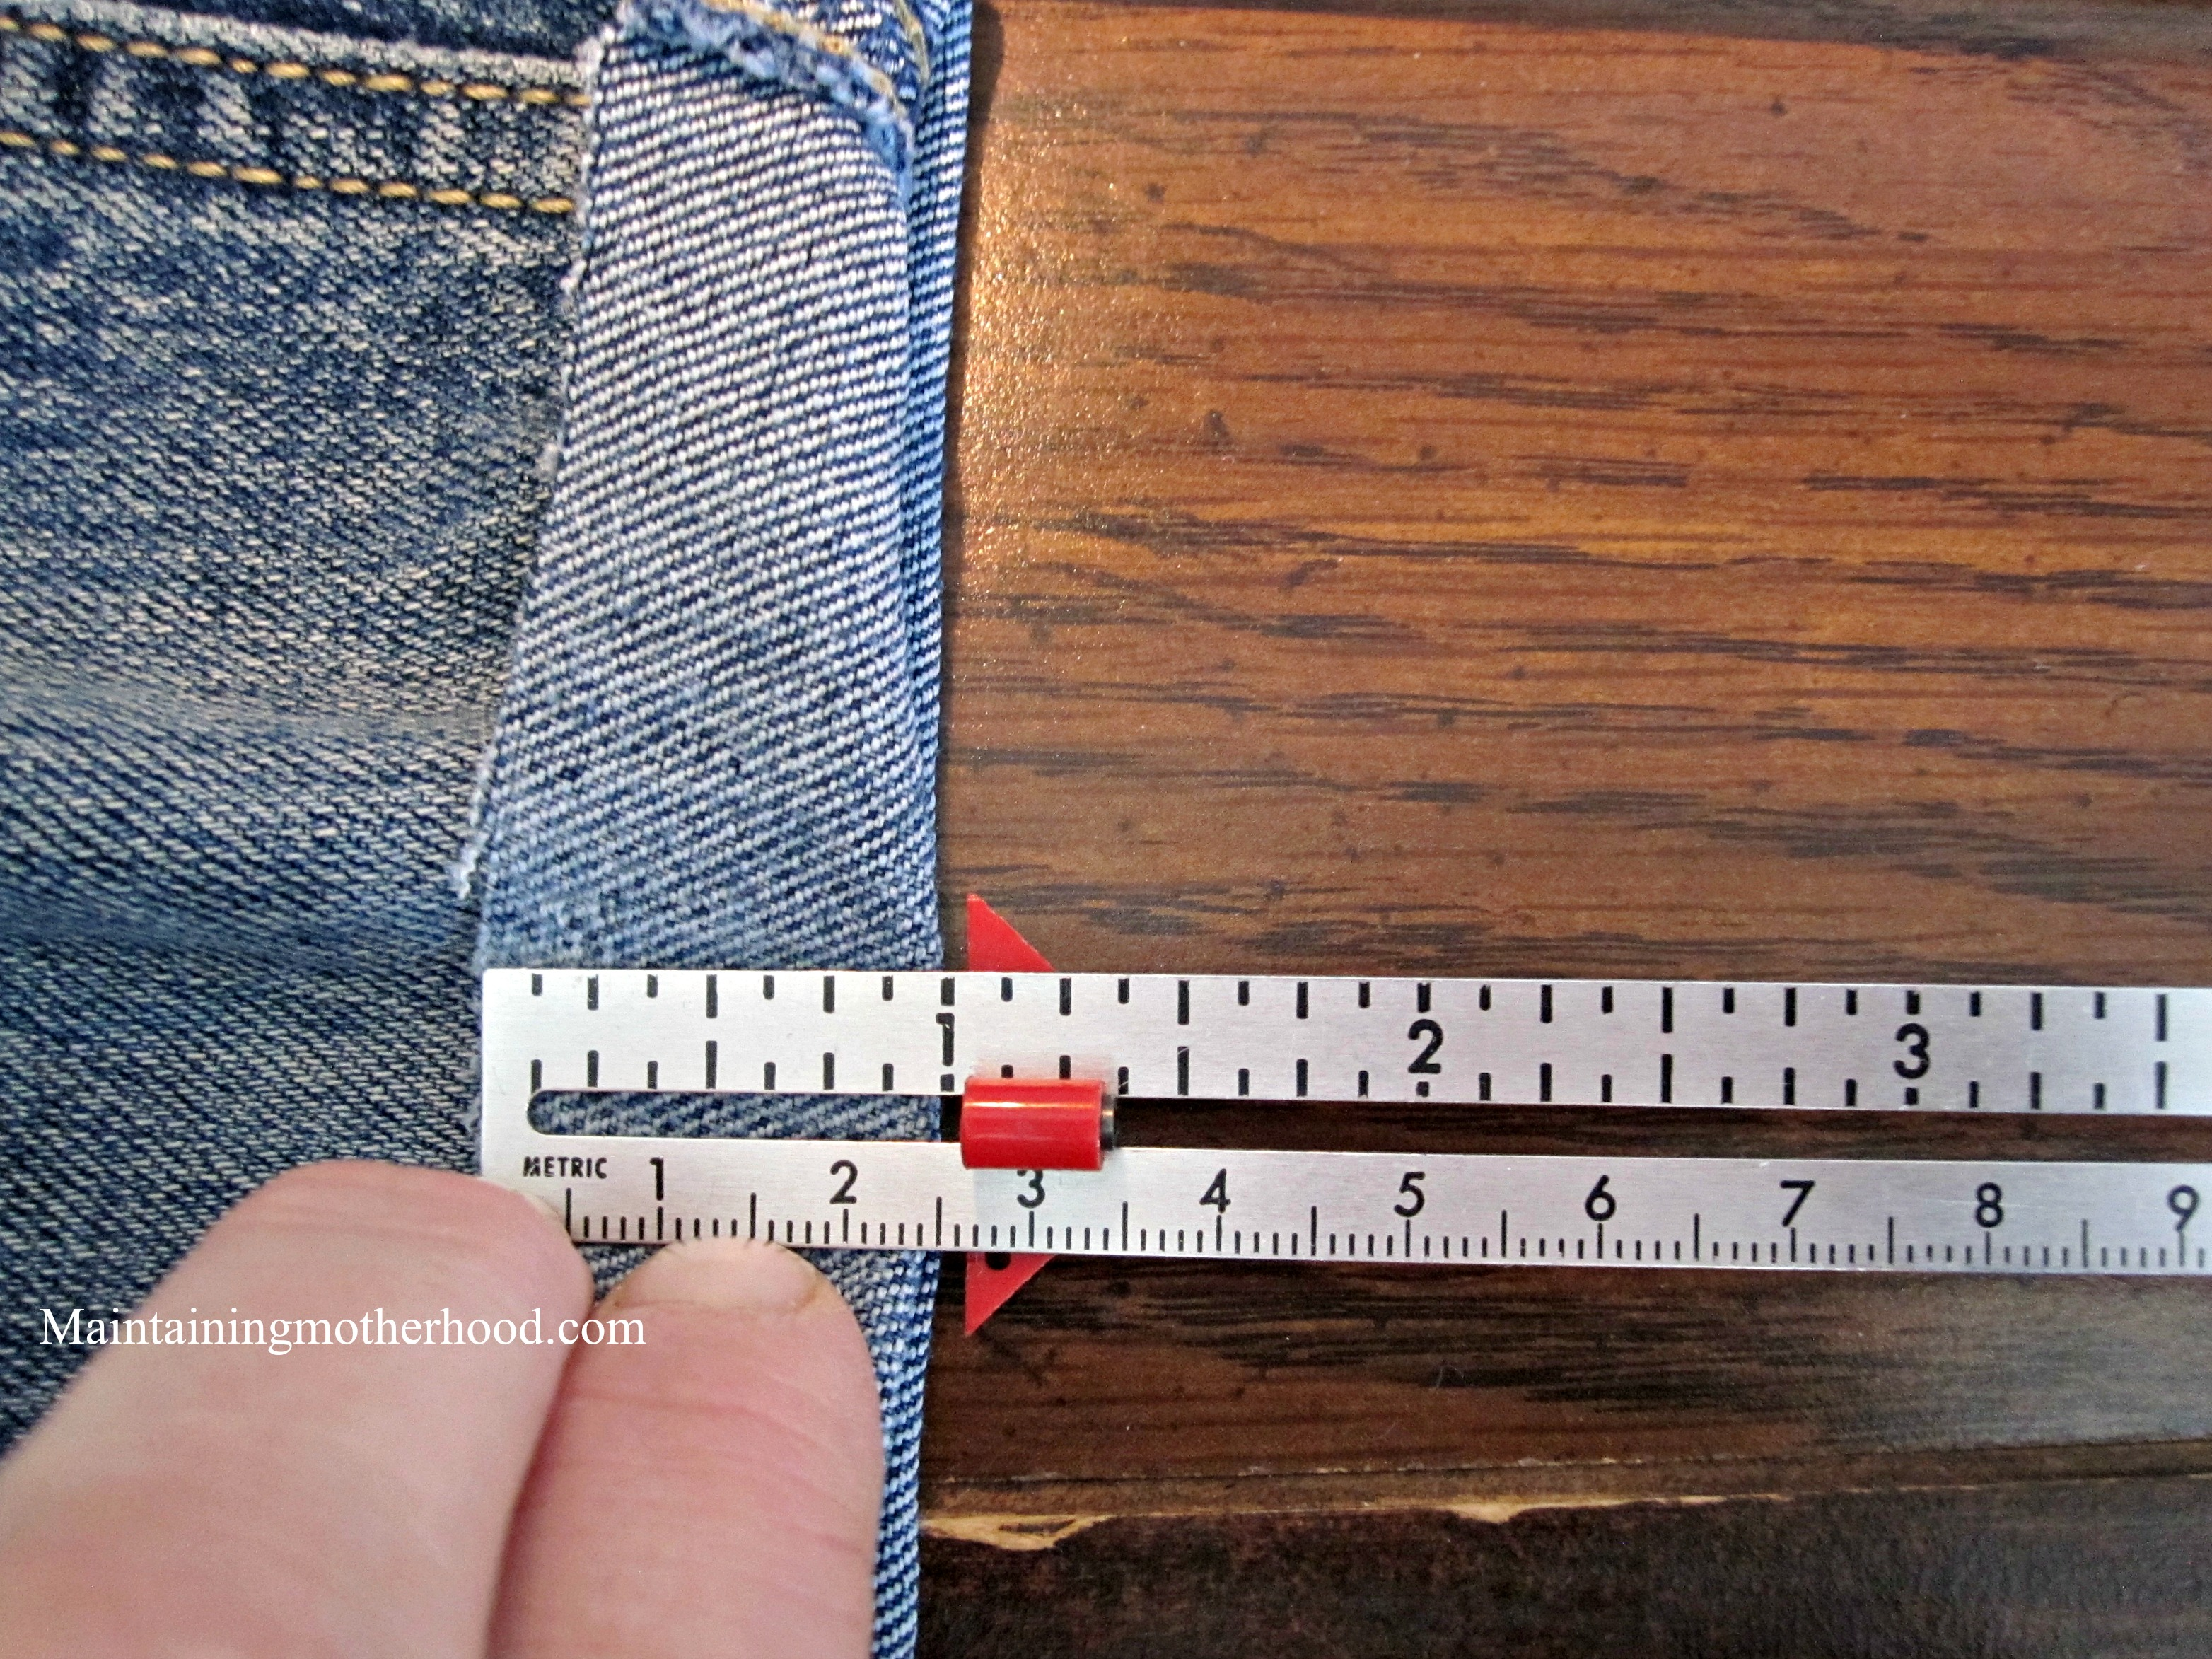 Looking for some comfortable and durable jean shorts? Why not use your favorite jeans with the worn out knee for some great DIY denim shorts?